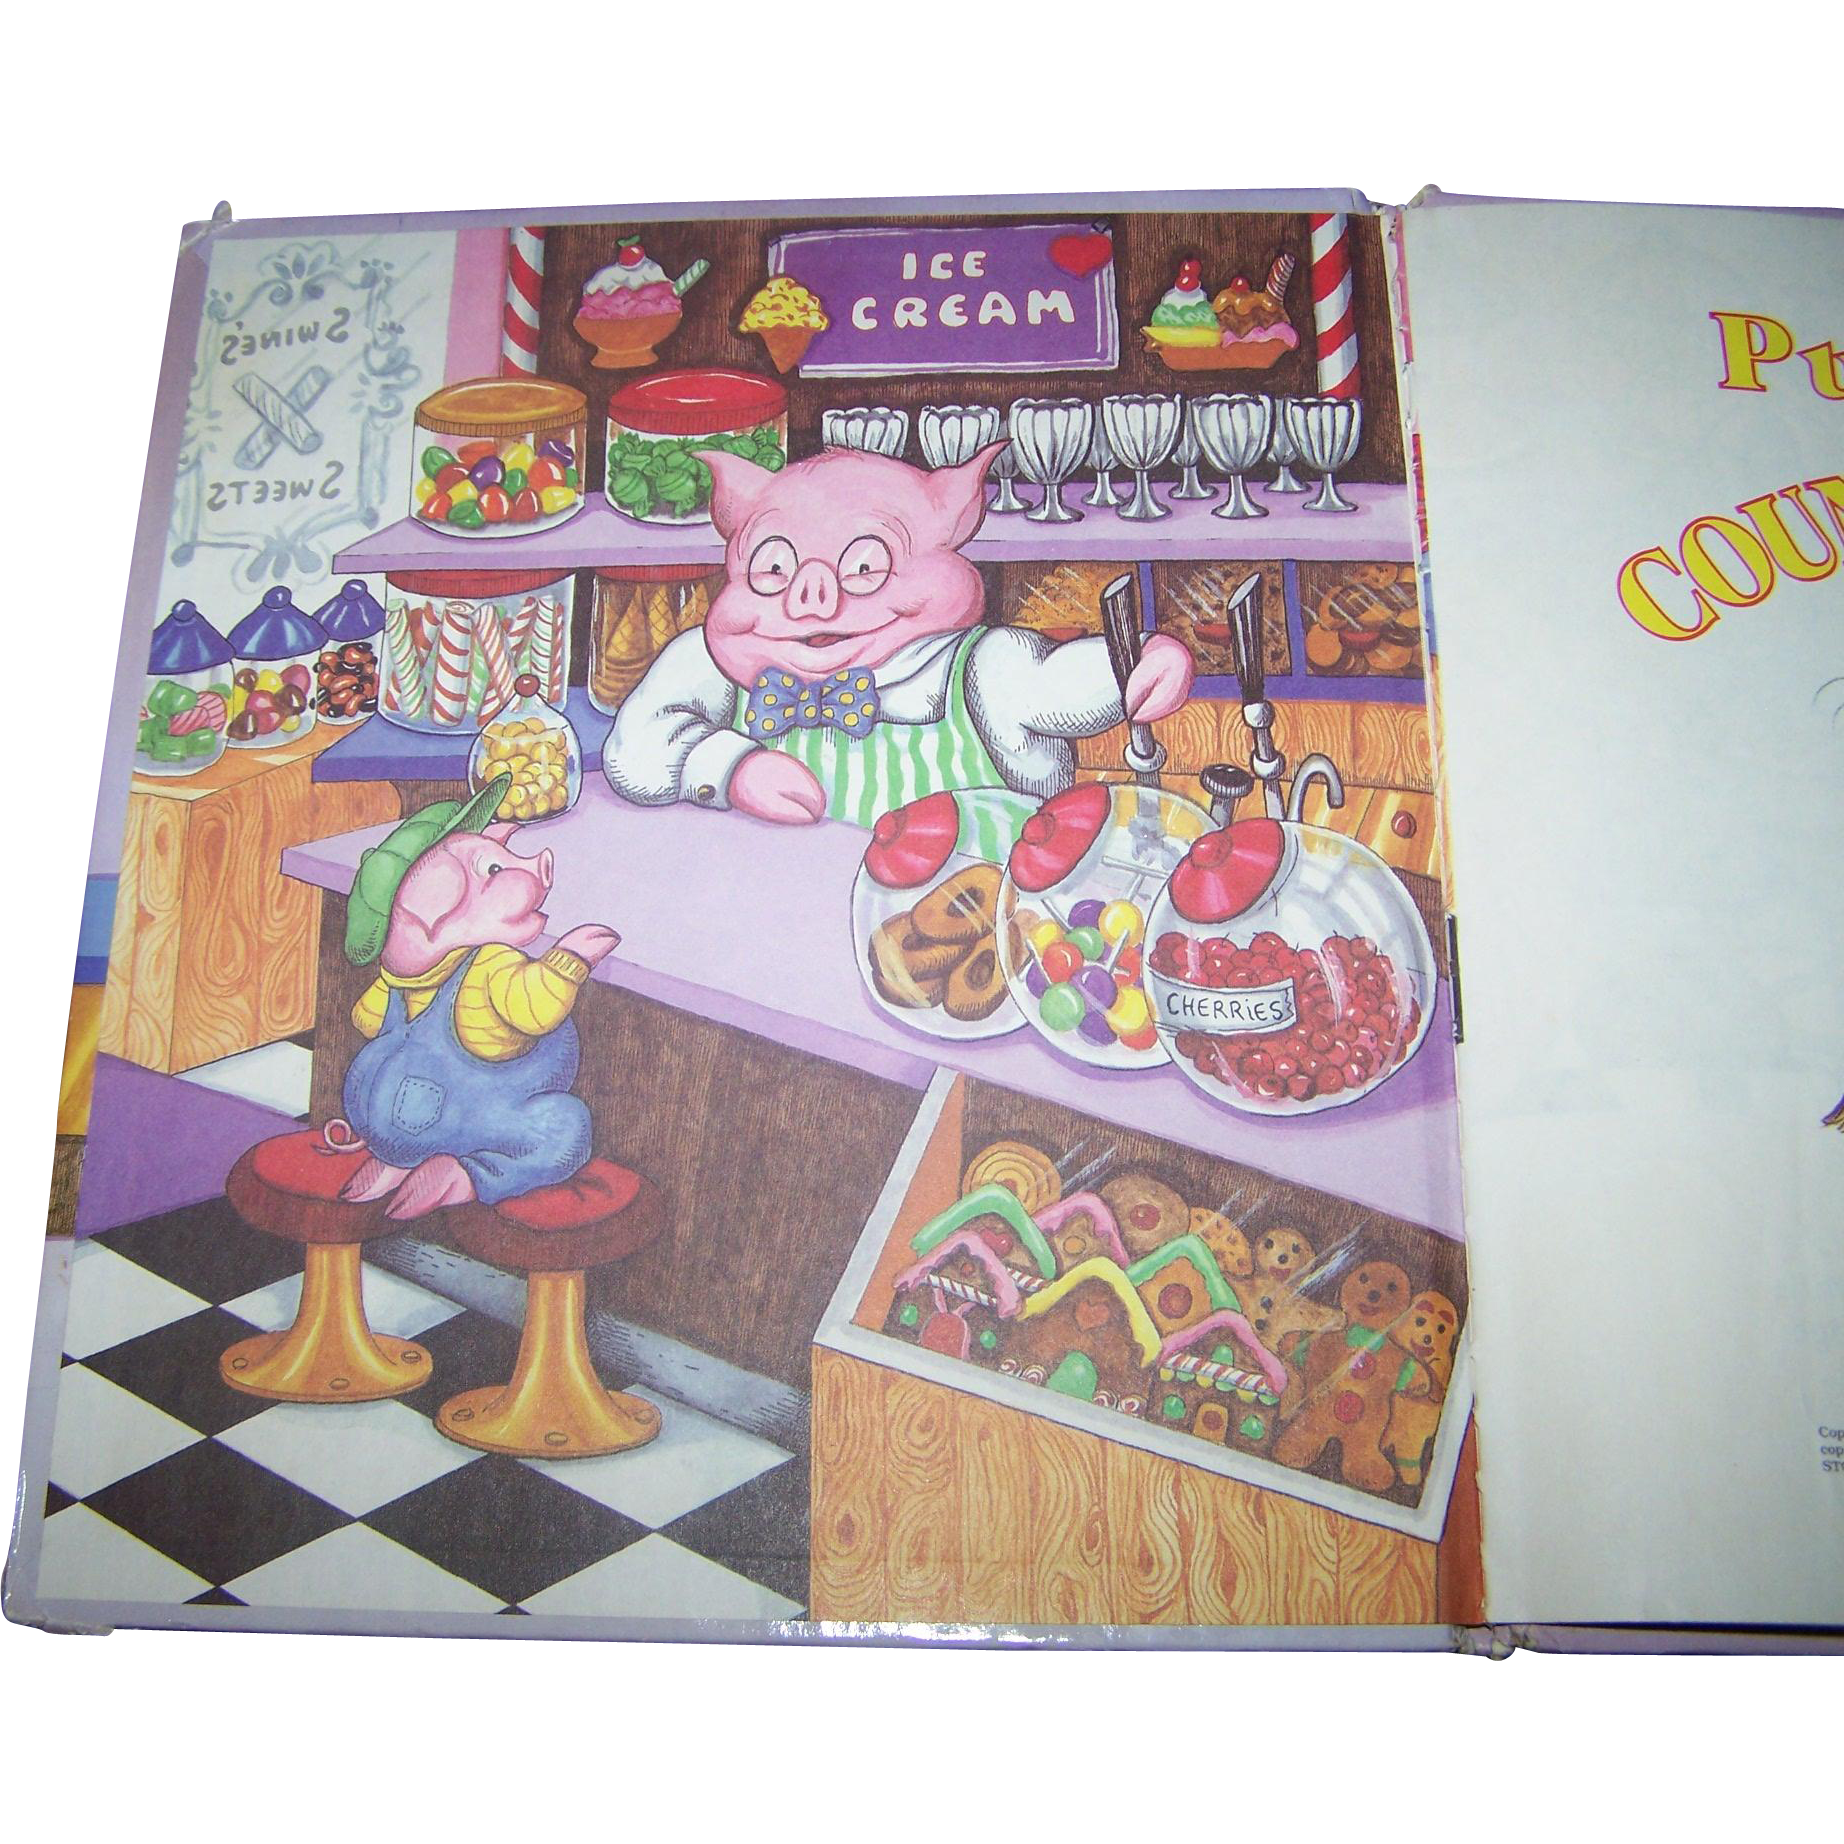 Pudge Pig's Counting Book By Amye Rosenberg